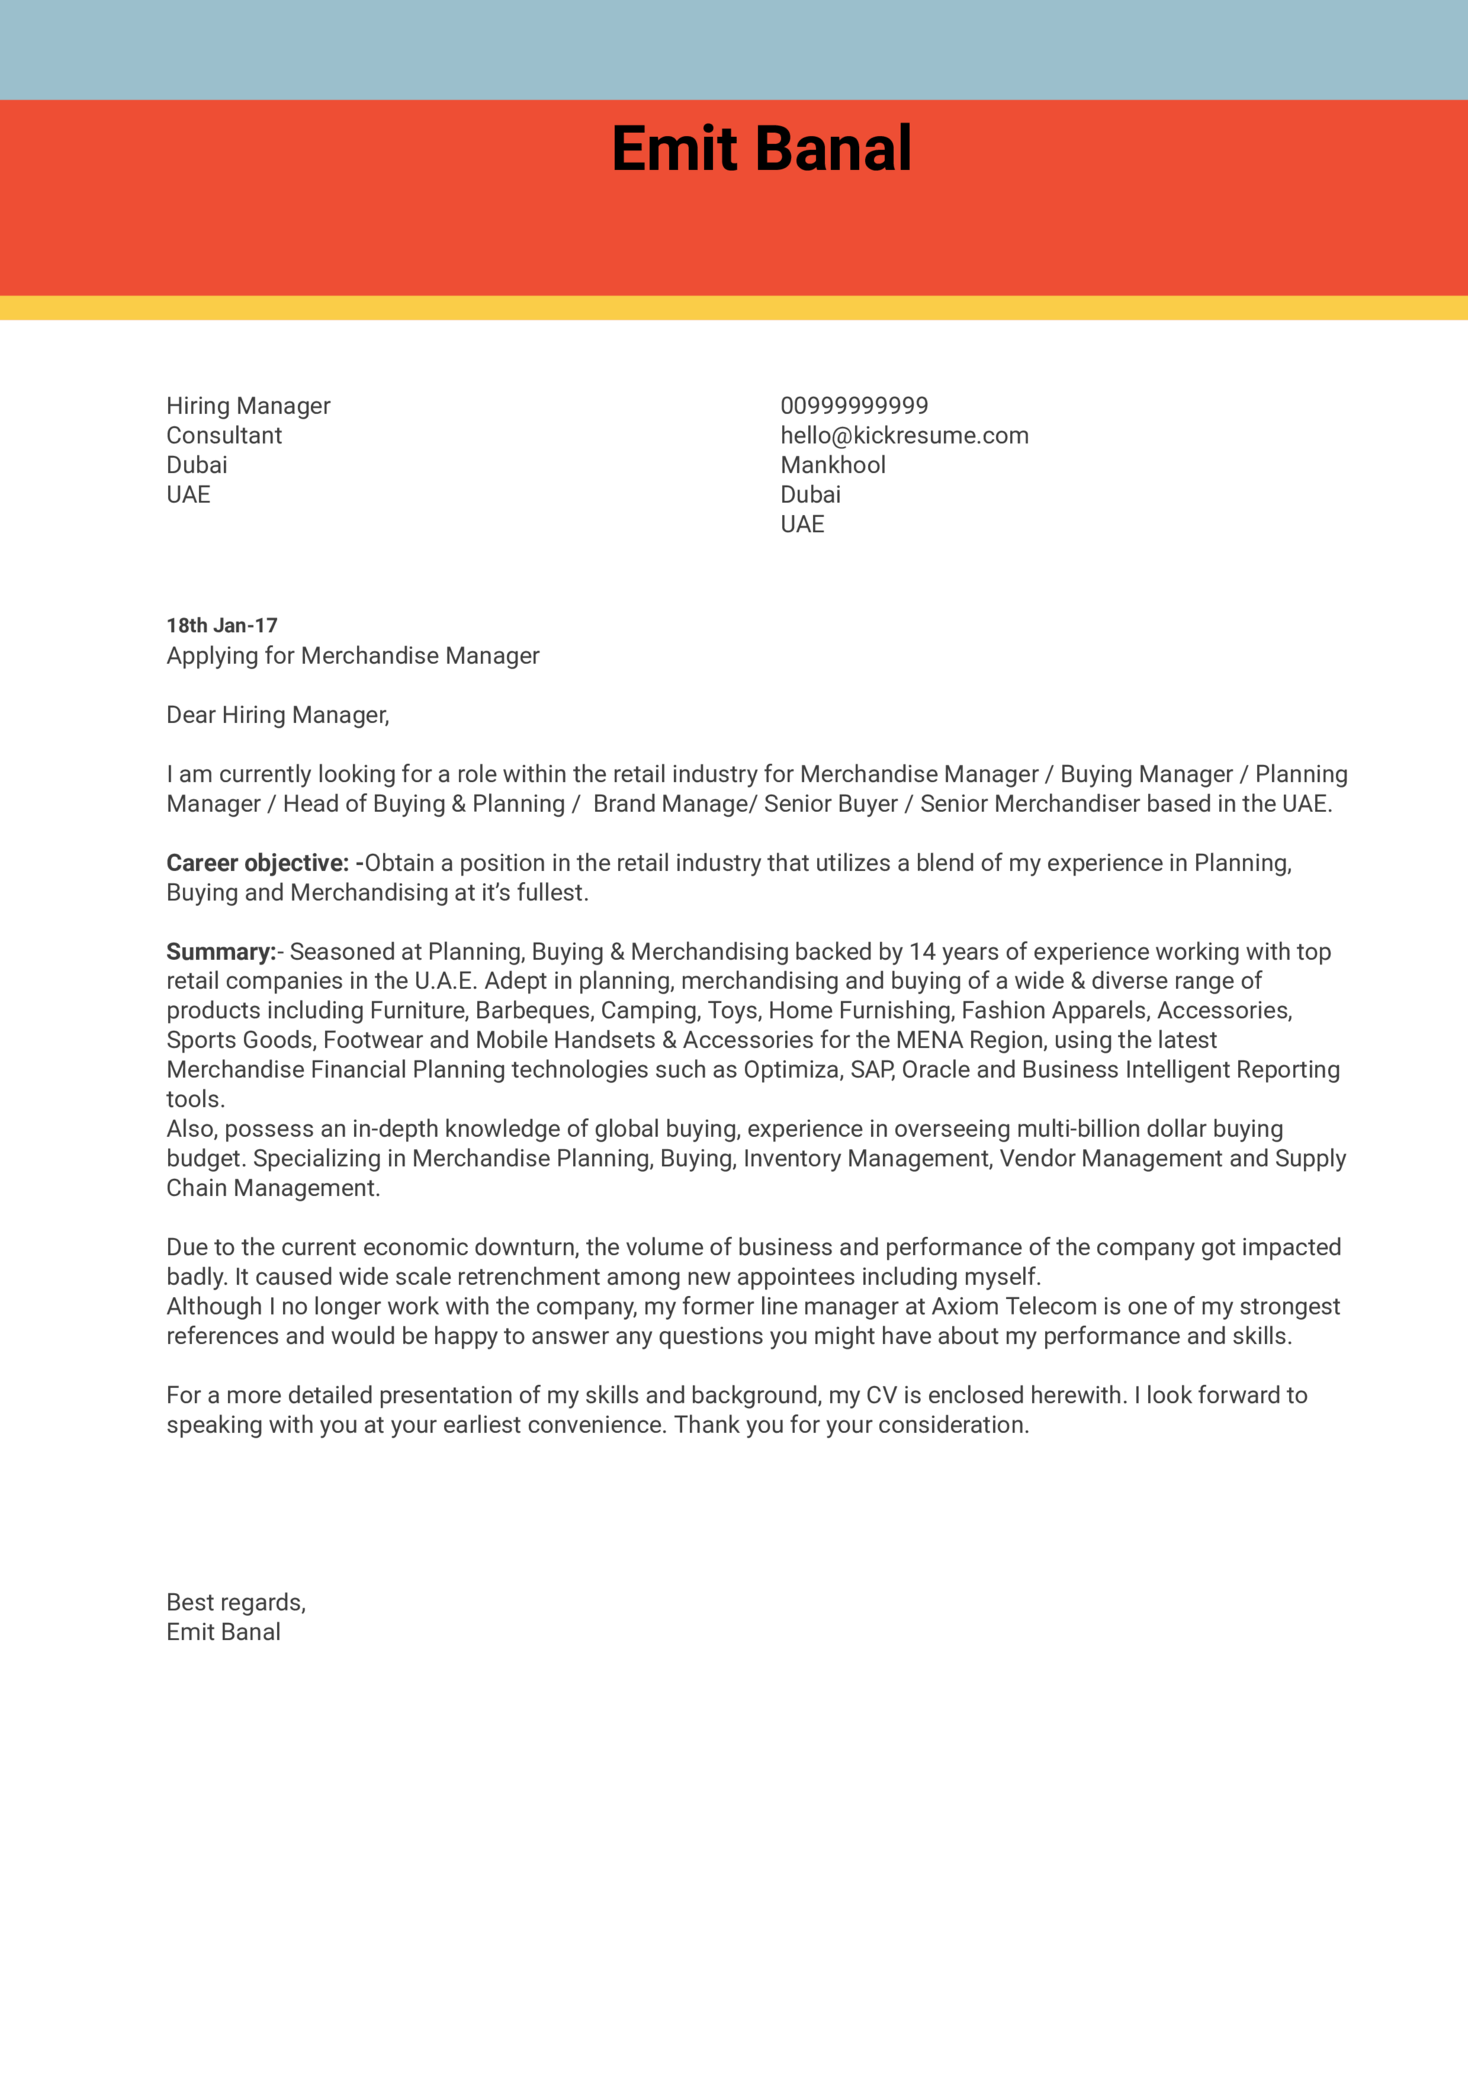 Branding consultant cover letter for Red bull cover letter examples